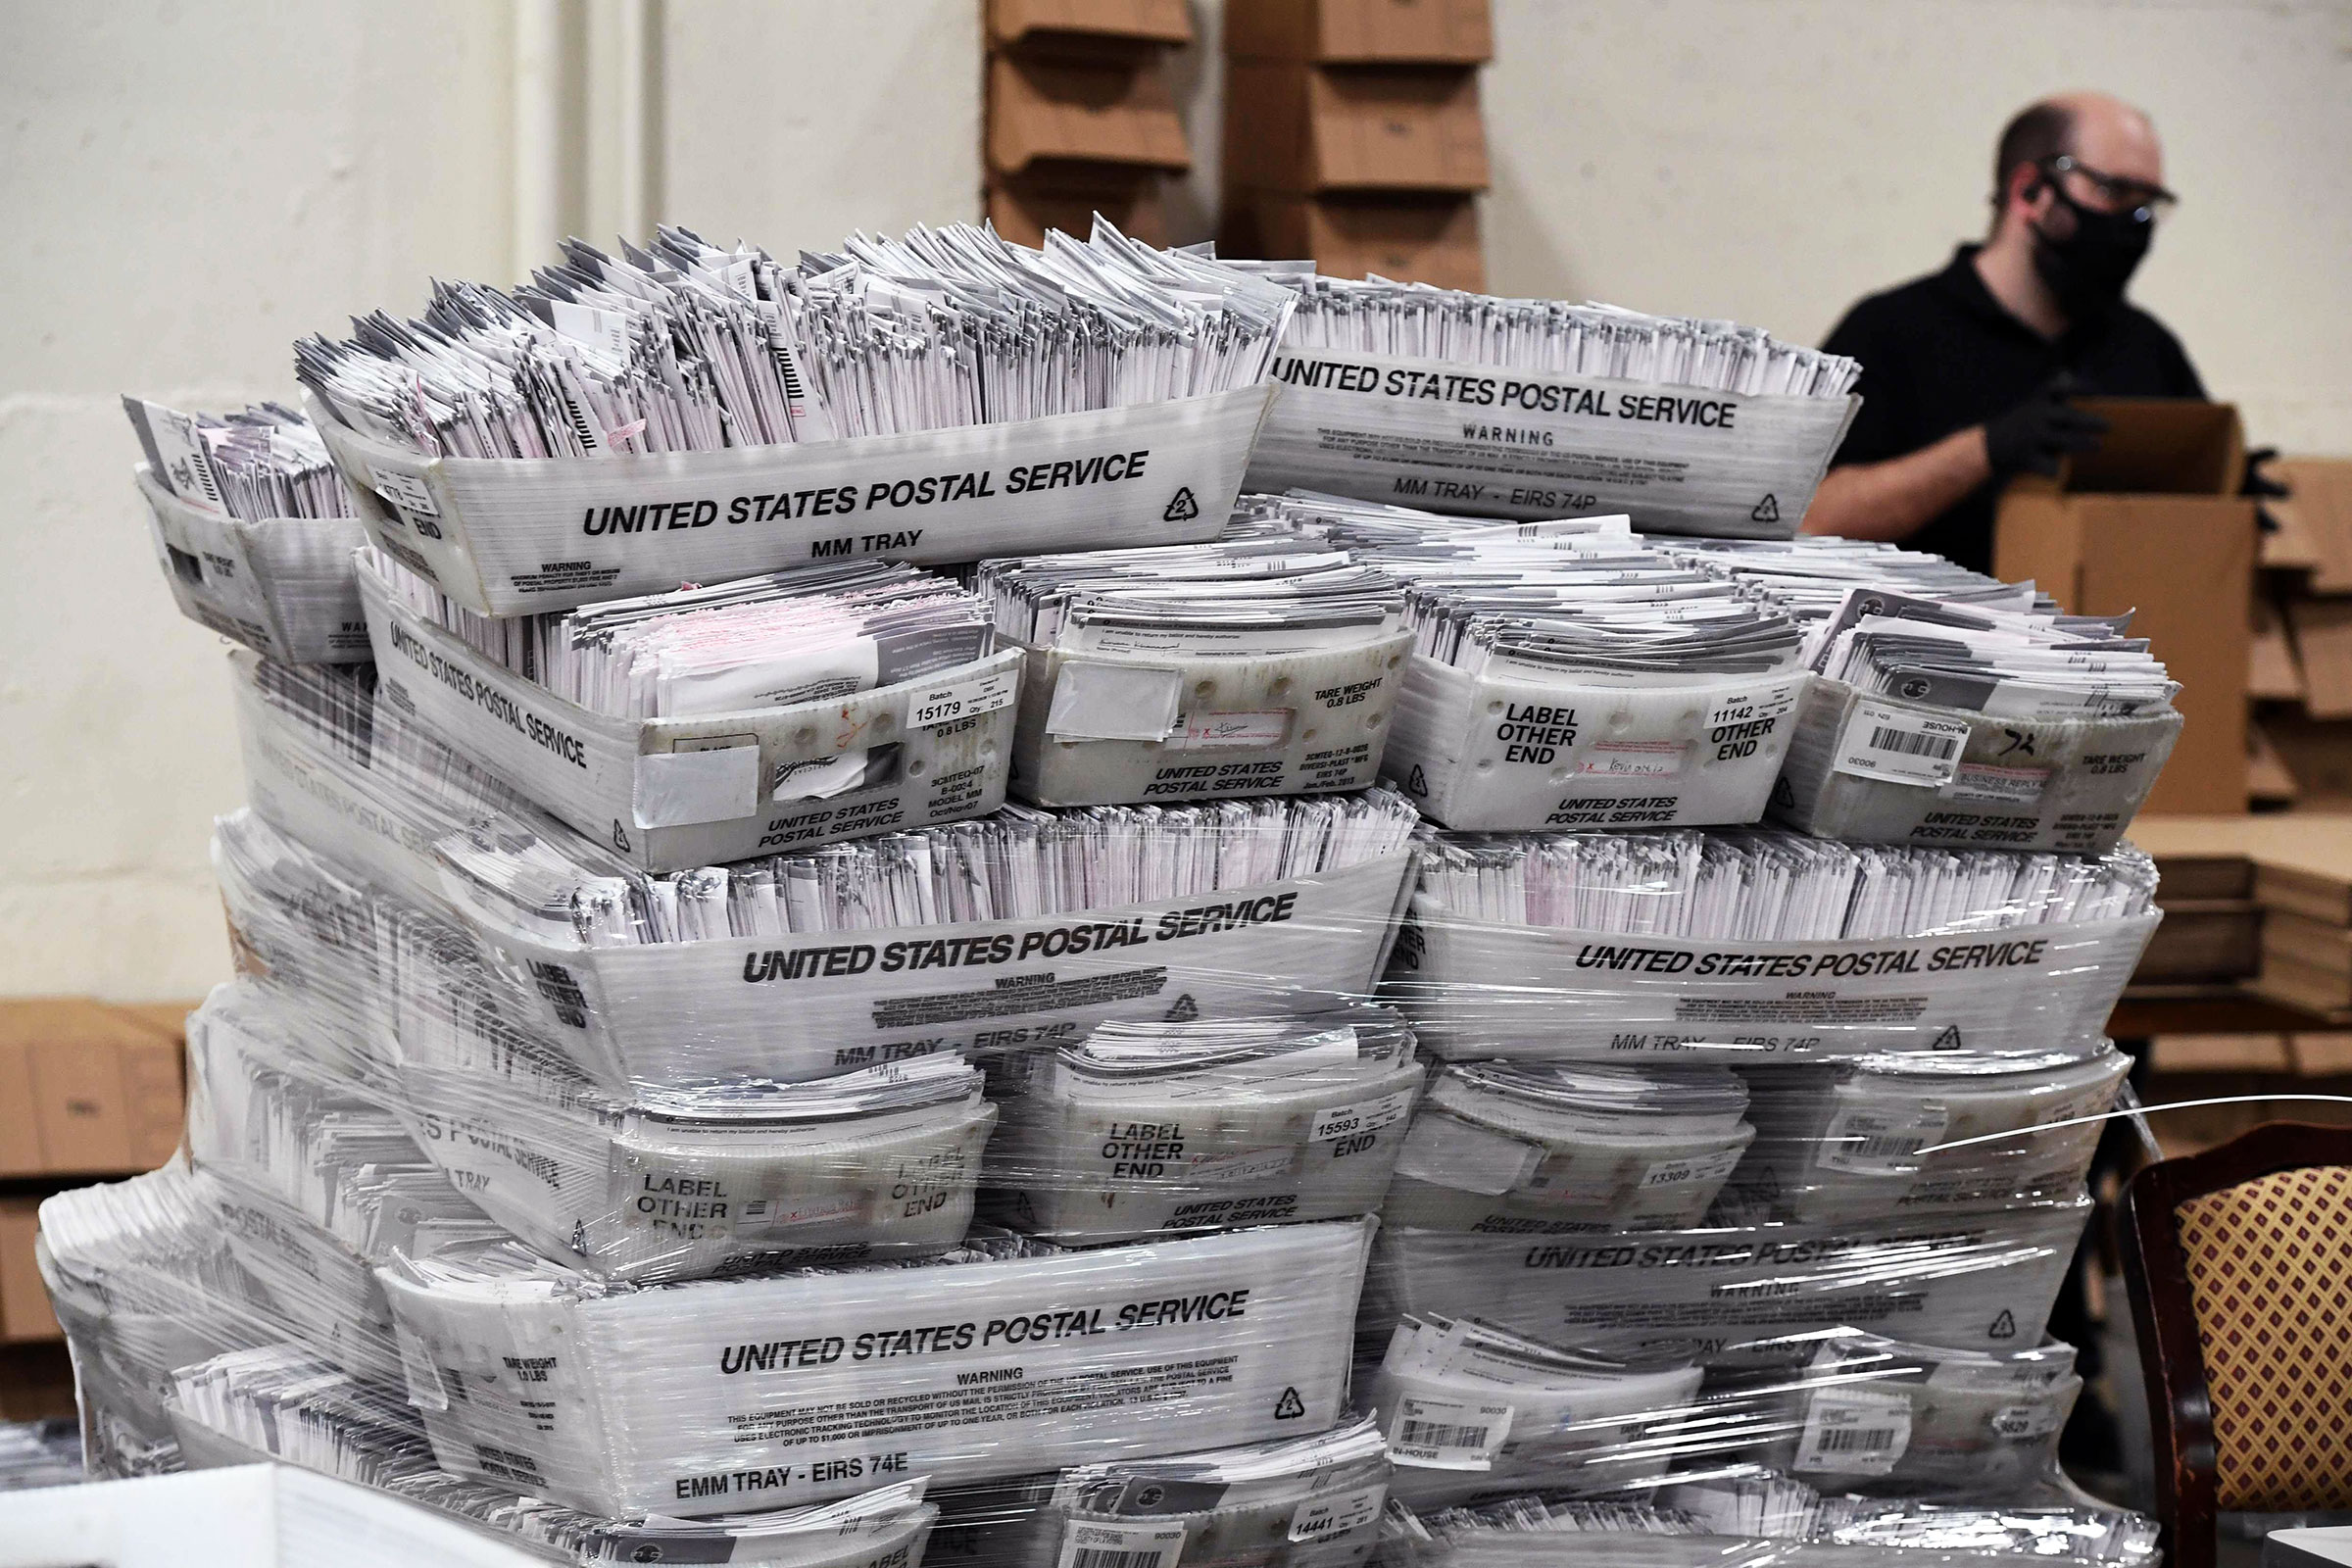 Mail-in ballots in their envelopes await processing at the Los Angeles County Registrar Recorders' mail-in ballot processing center in Pomona, Calif., On Oct. 28, 2020.